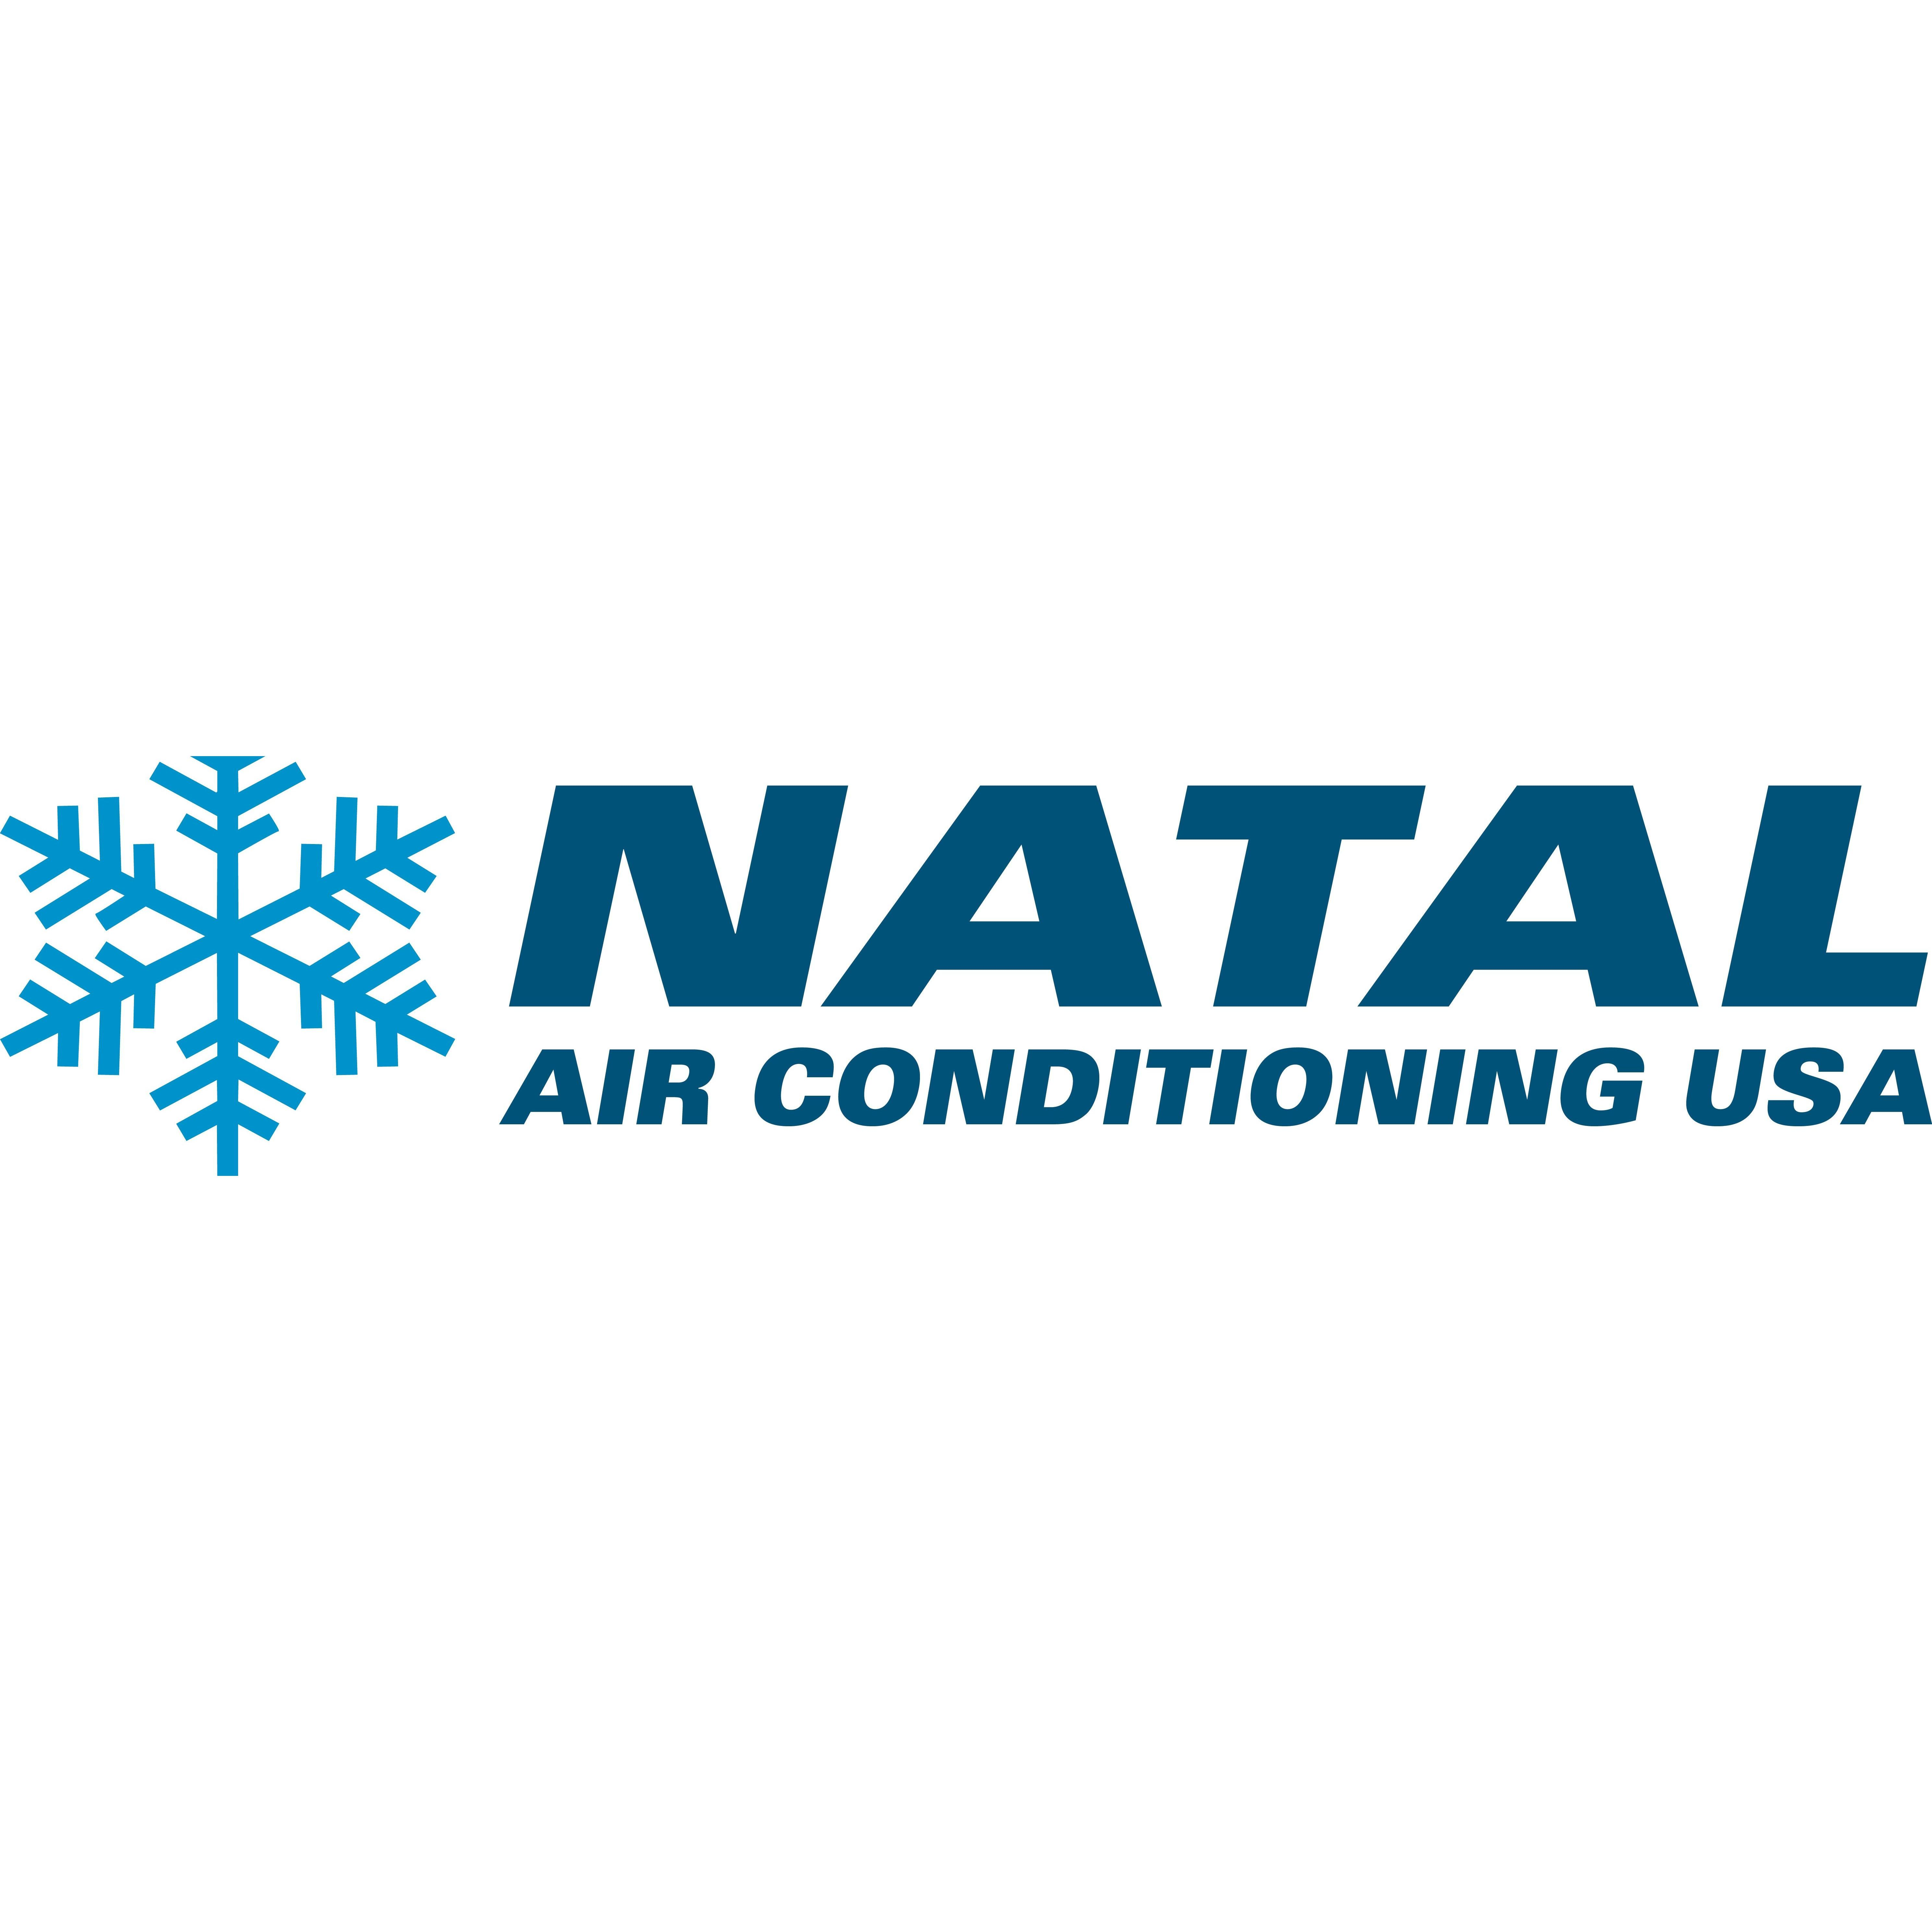 Natal Air Conditioning Usa Heating Air Conditioning Hvac Pompano Beach Fl Reviews